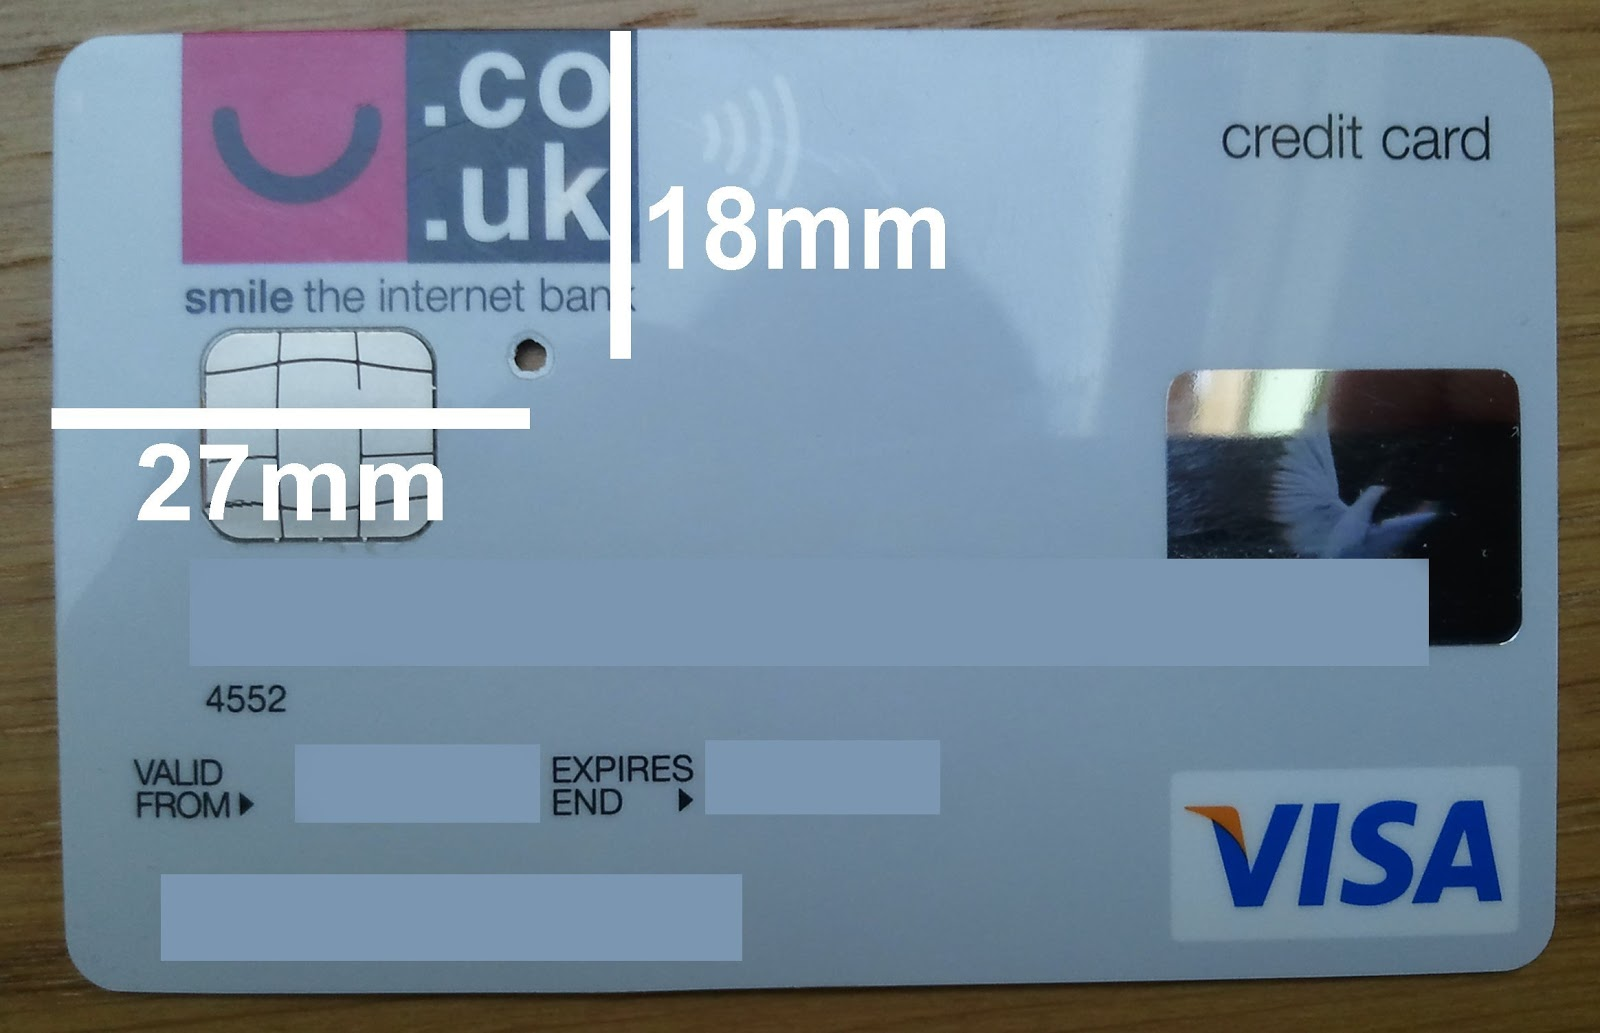 Disabling Contactless Payment on Debit Cards - Instructables